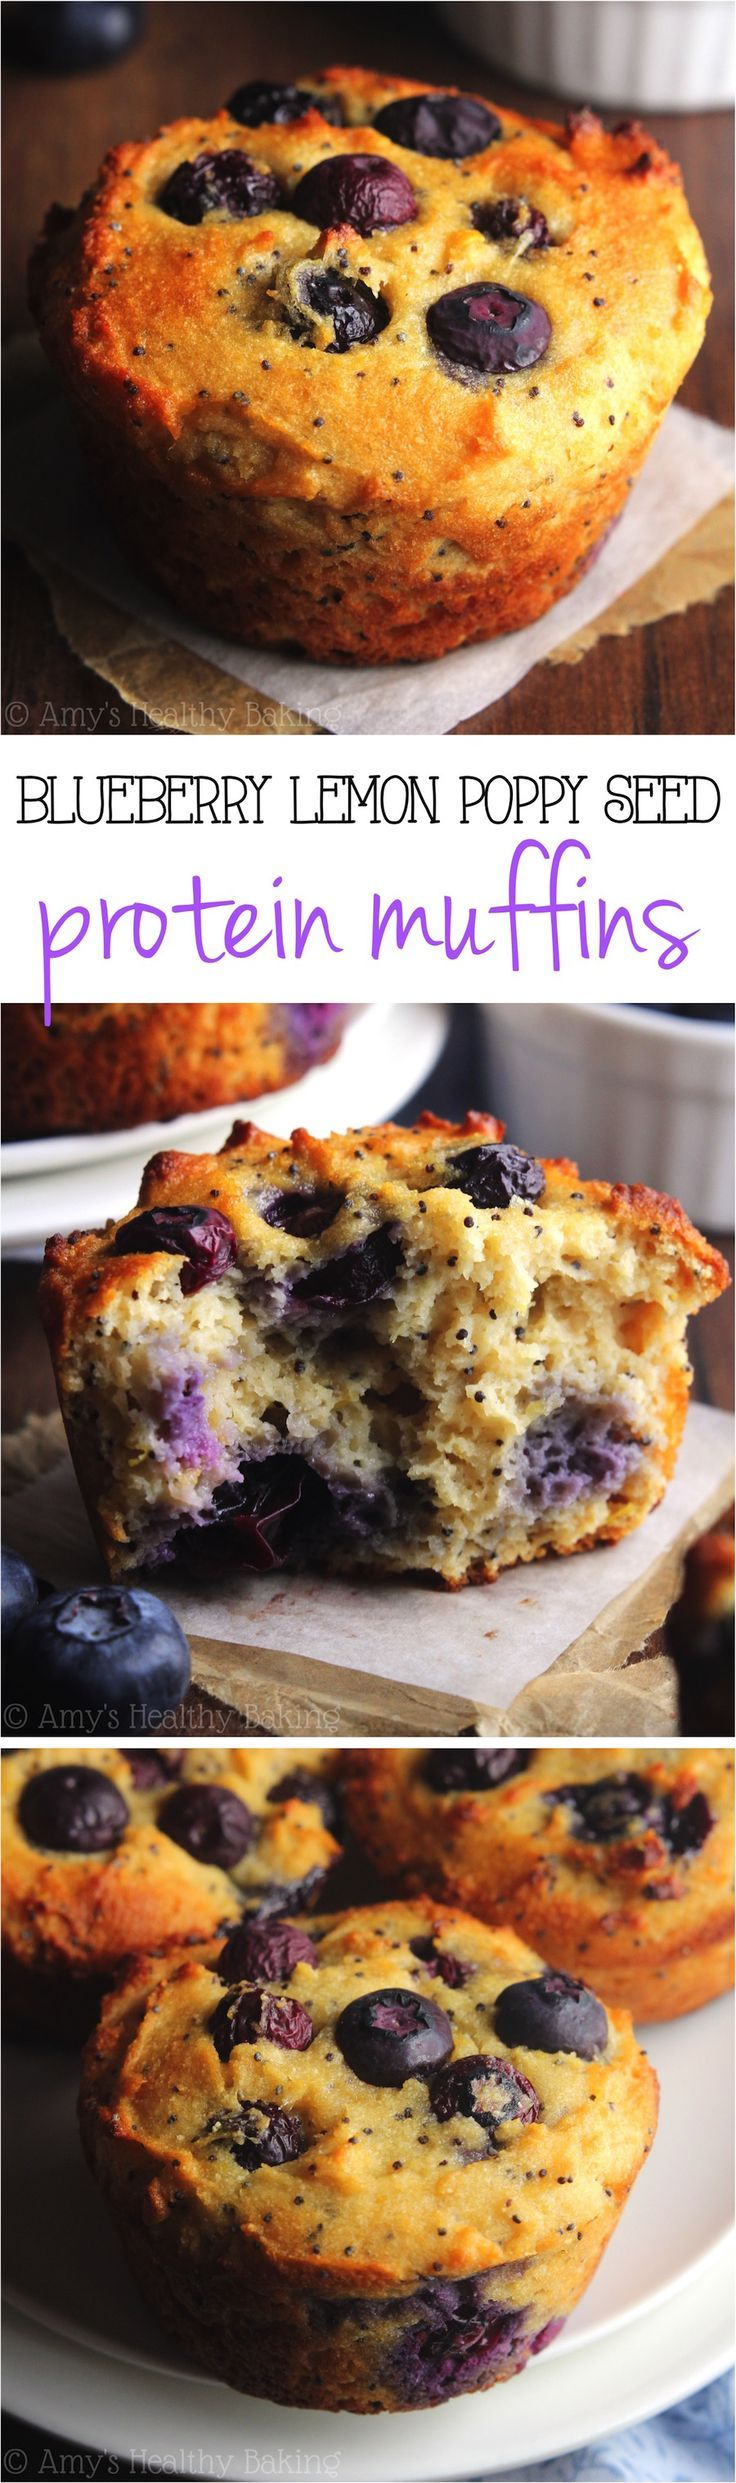 A quick, easy & healthy breakfast treat! They're packed with 8g+ protein & practically taste like cupcakes!